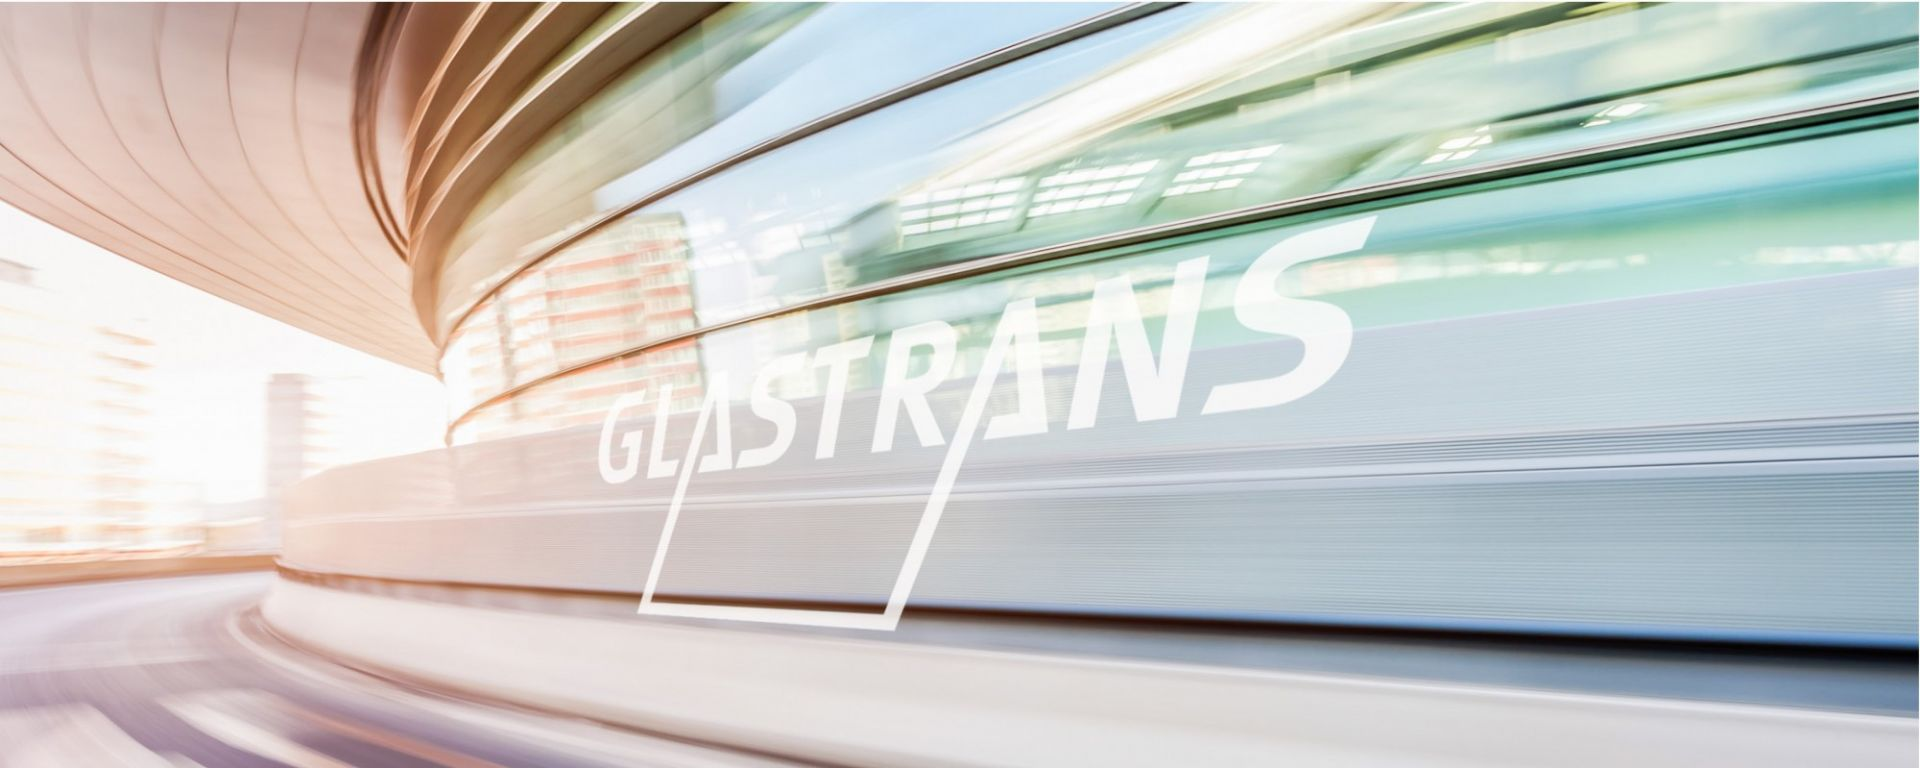 Glastrans Gelsenkirchen Glas Spedition Transport